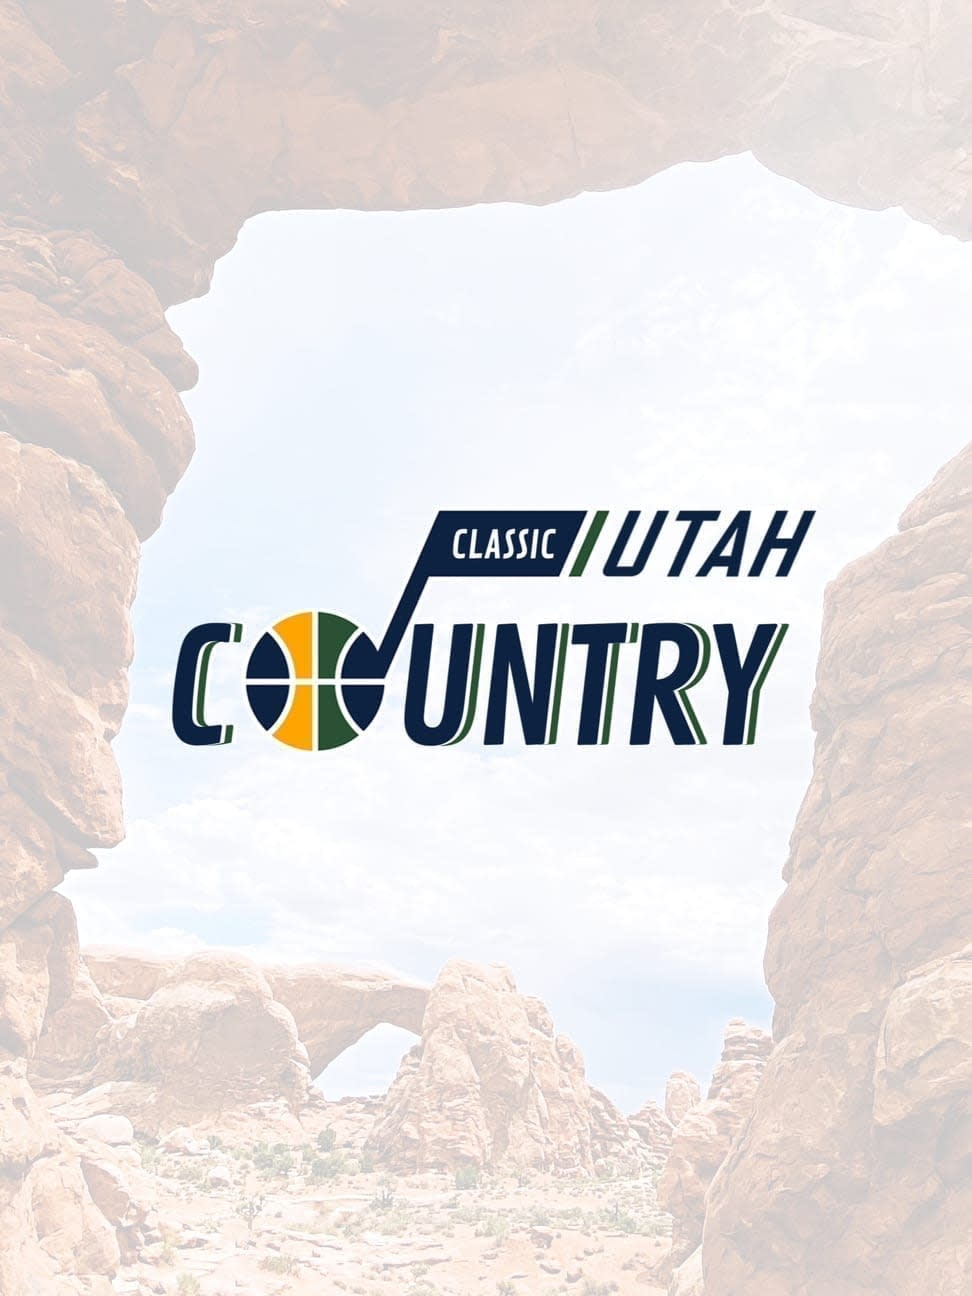 The Utah Jazz are changing their name to the Utah Classic Country as professional sports teams across America make similar moves.